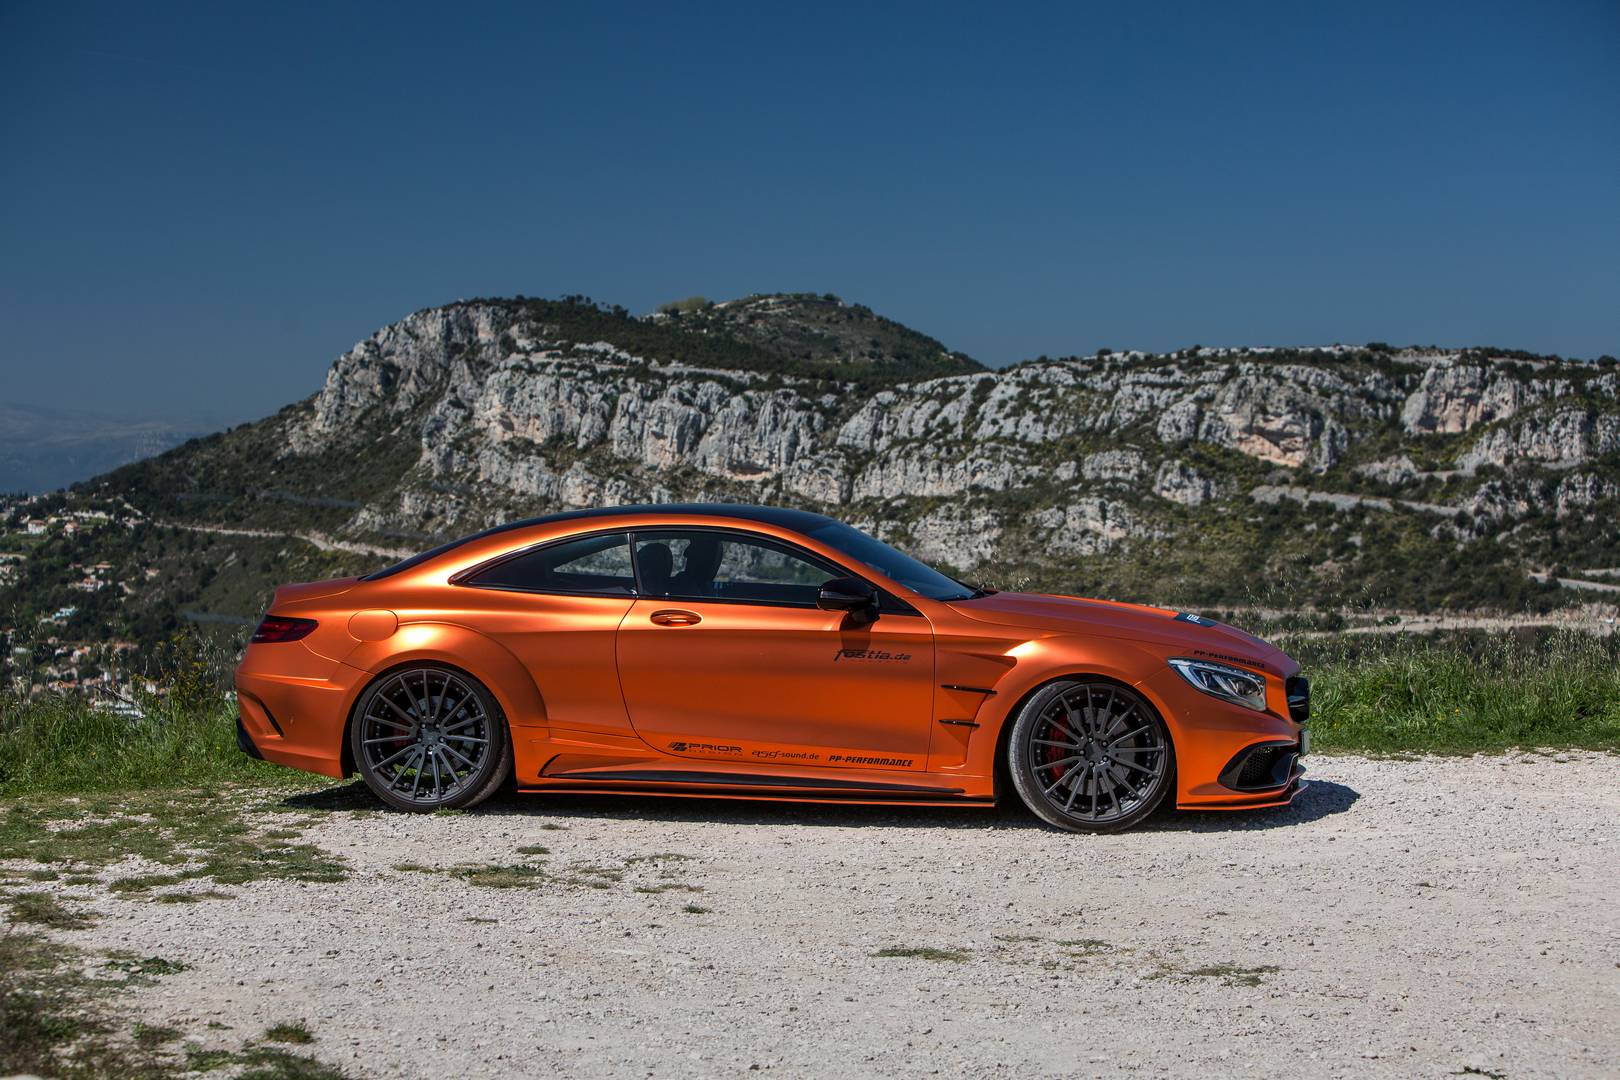 740hp orange chrome matt mercedes amg s63 by for Mercedes benz s63 amg biturbo